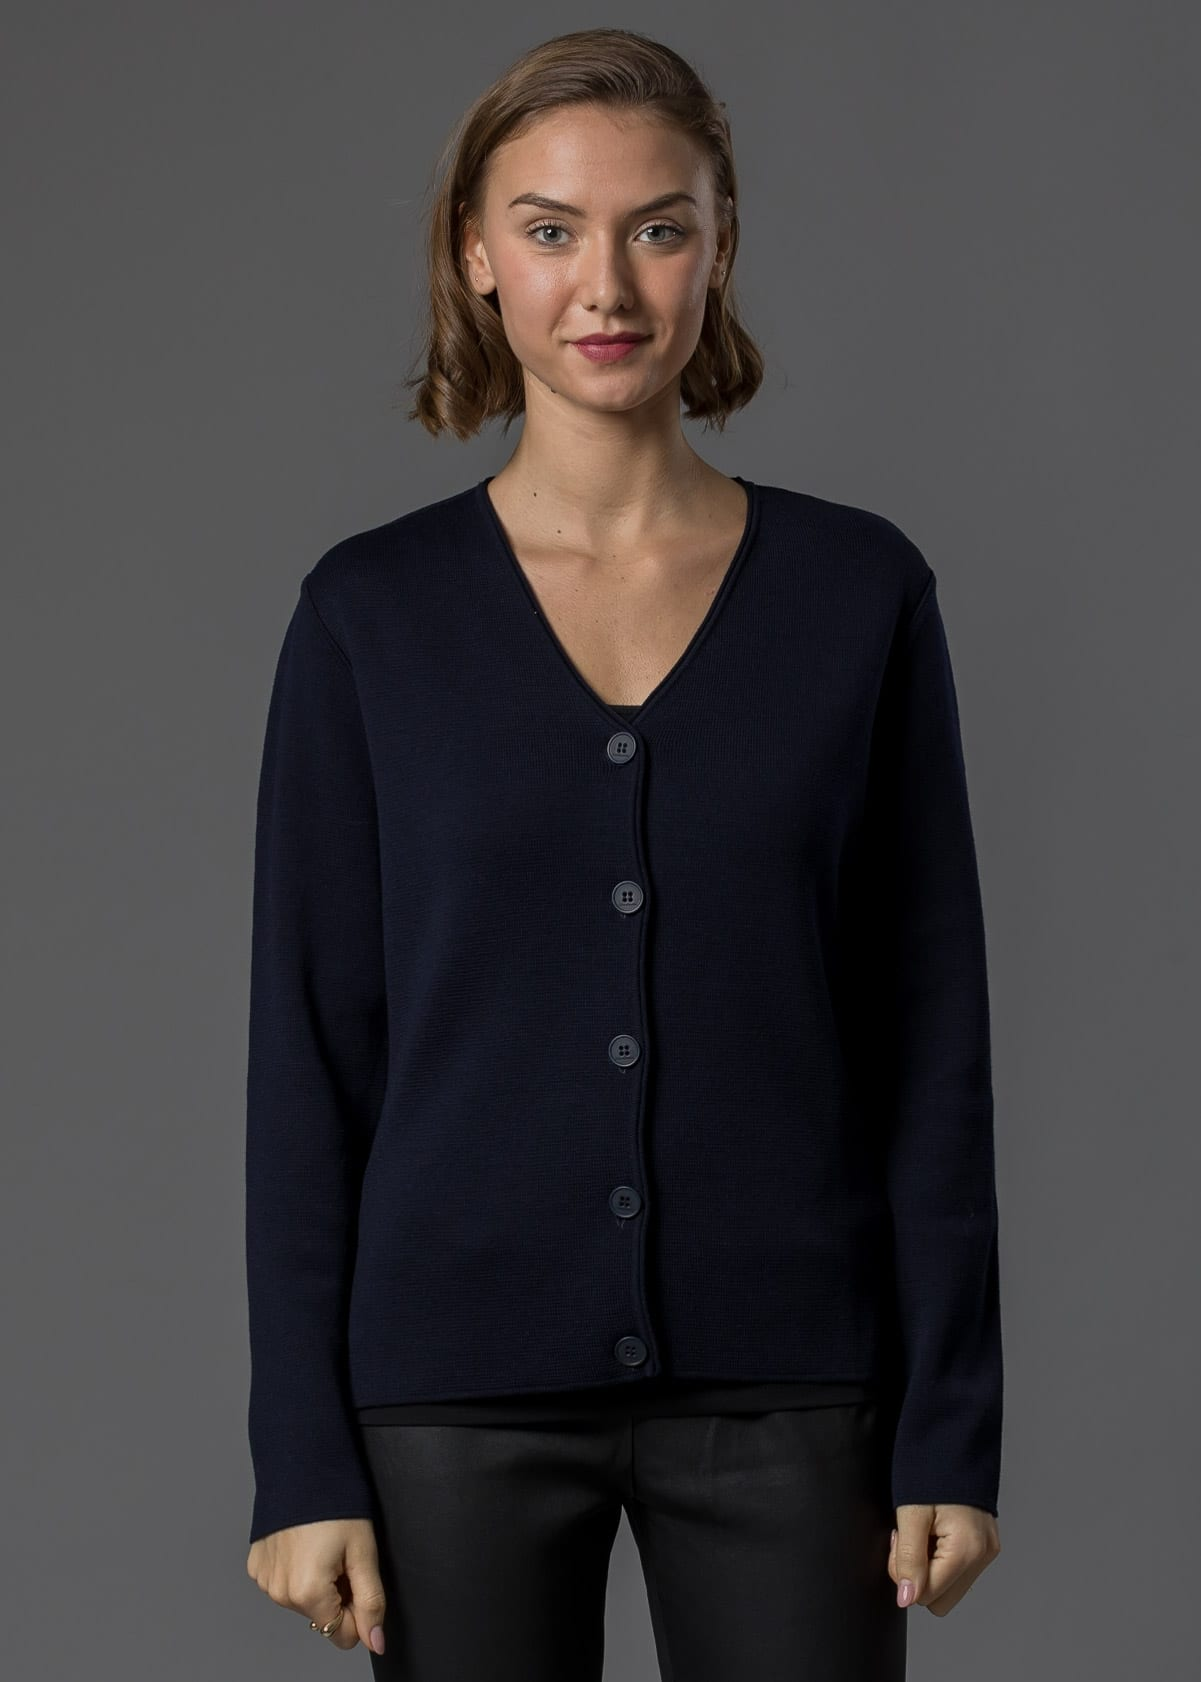 Connemara Jacke Betty Merino marine - Milano Strick